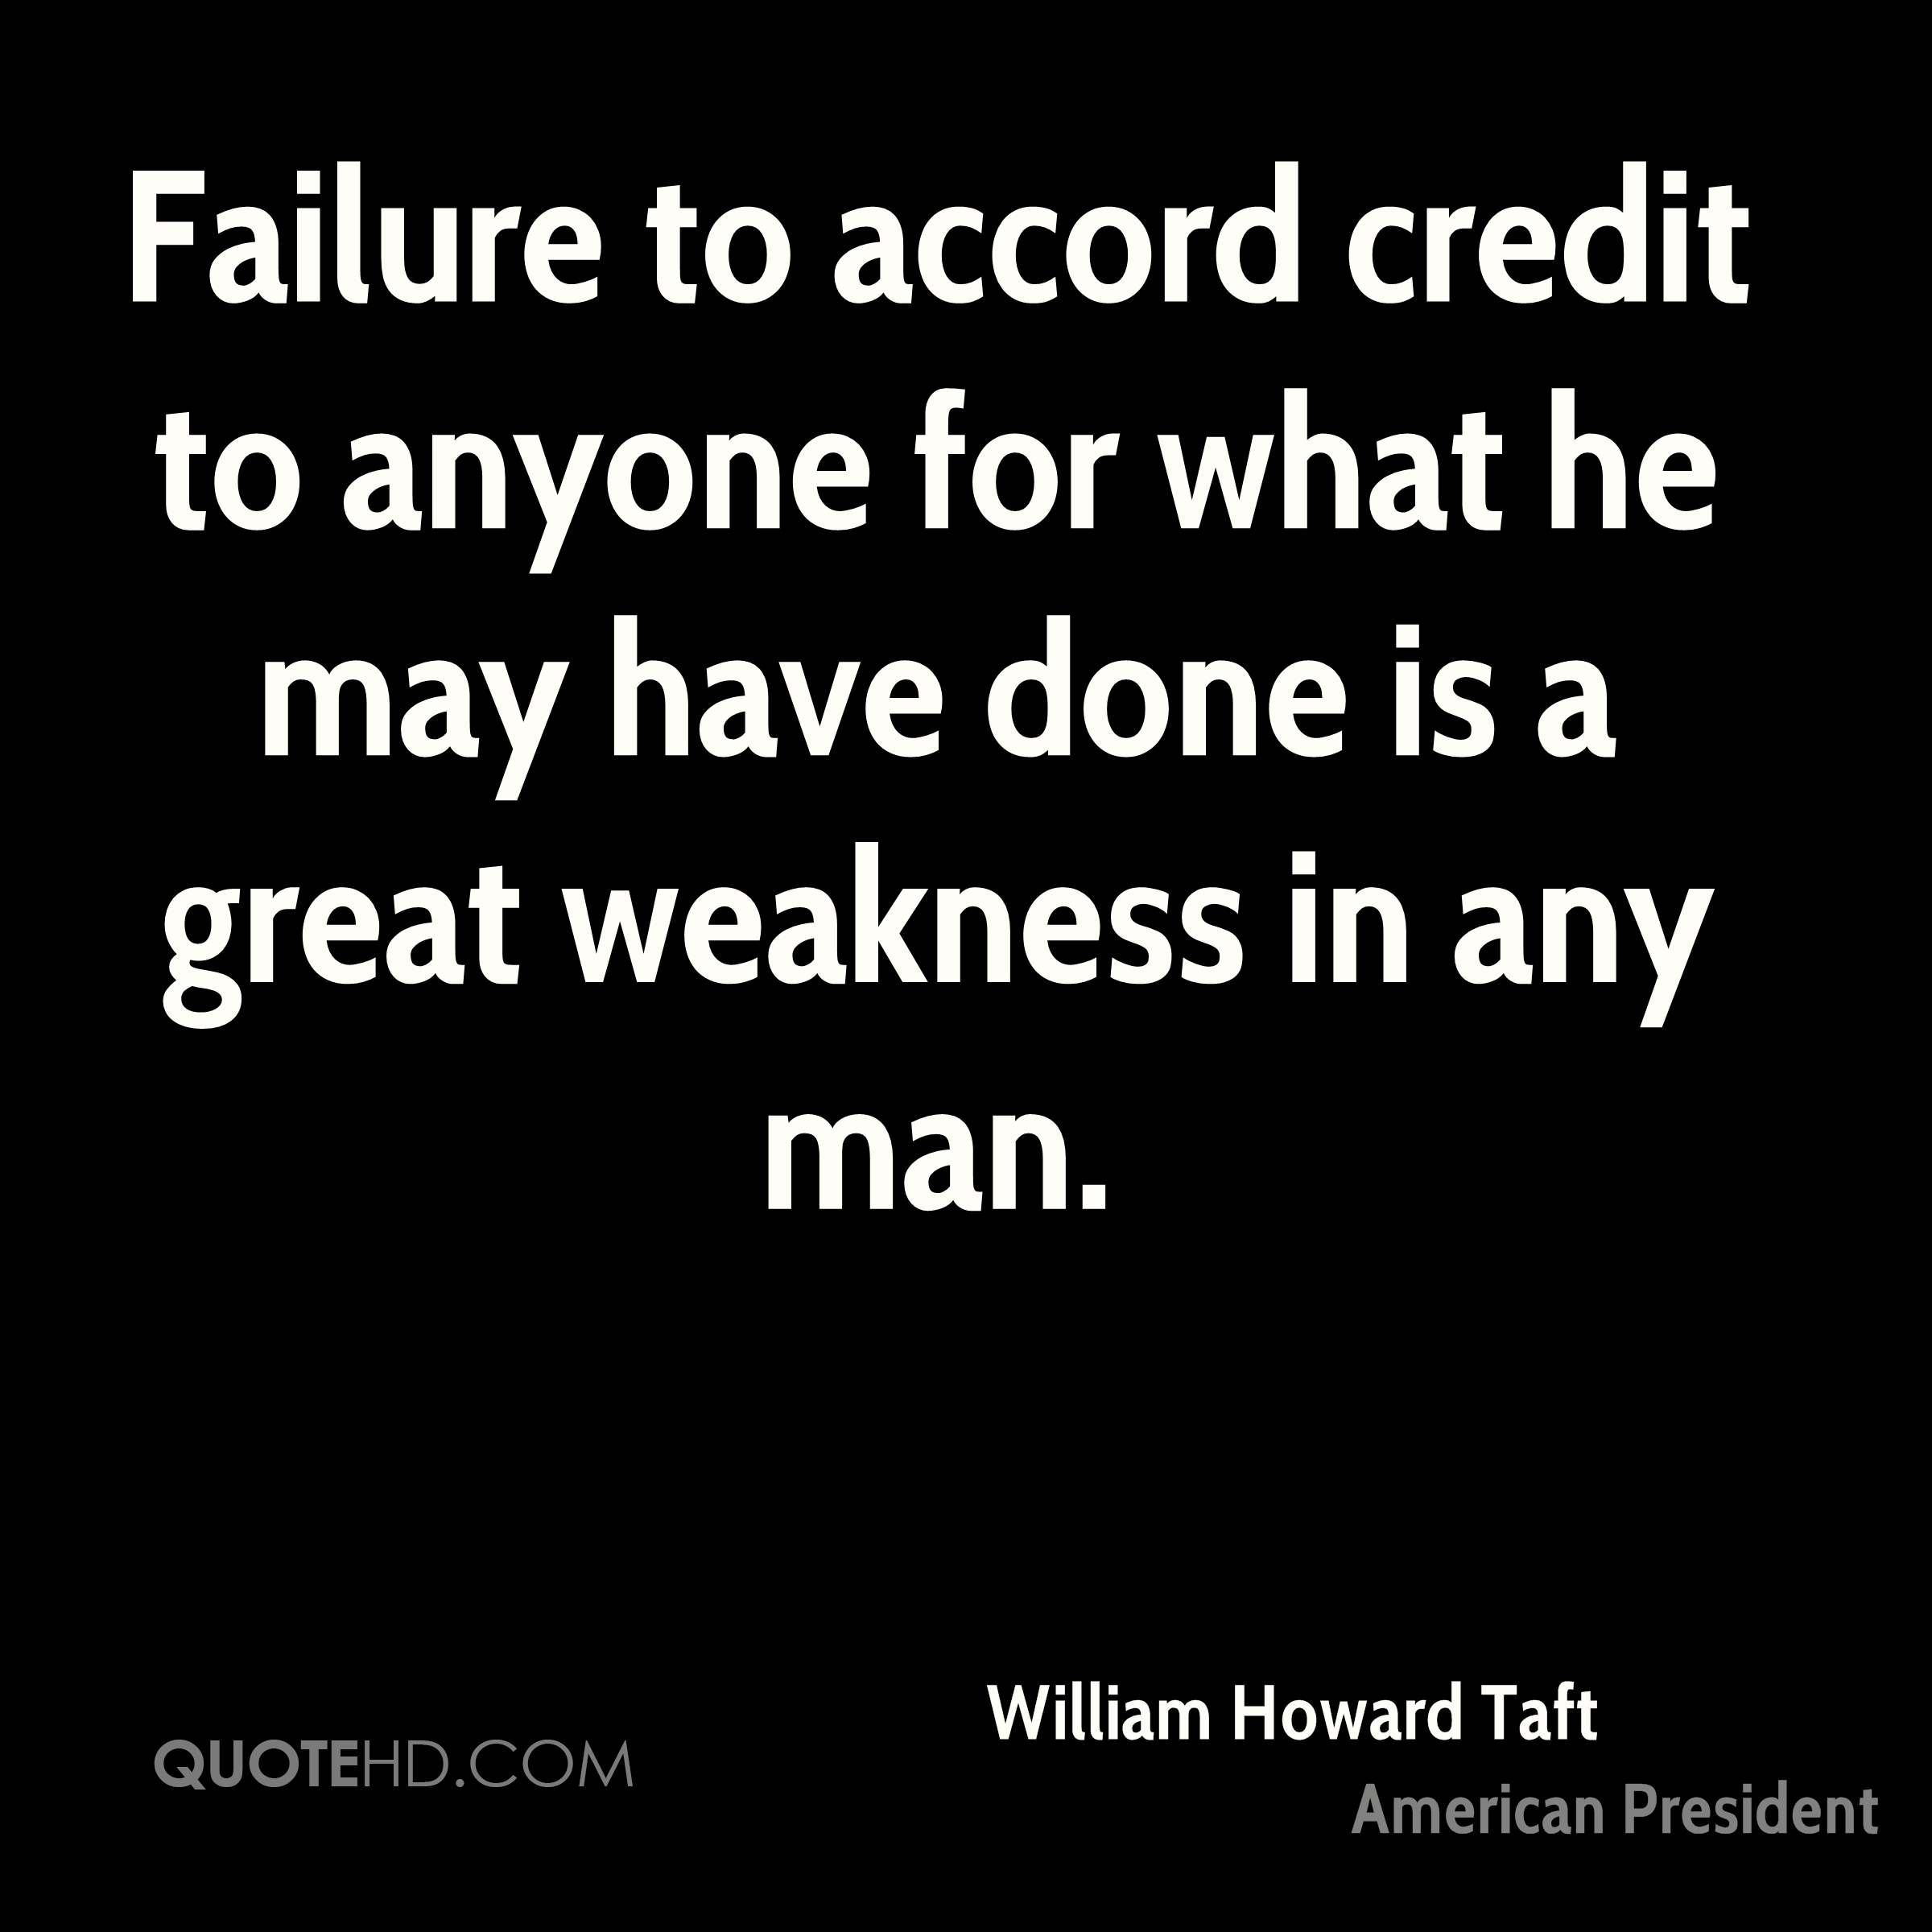 Failure to accord credit to anyone for what he may have done is a great weakness in any man.